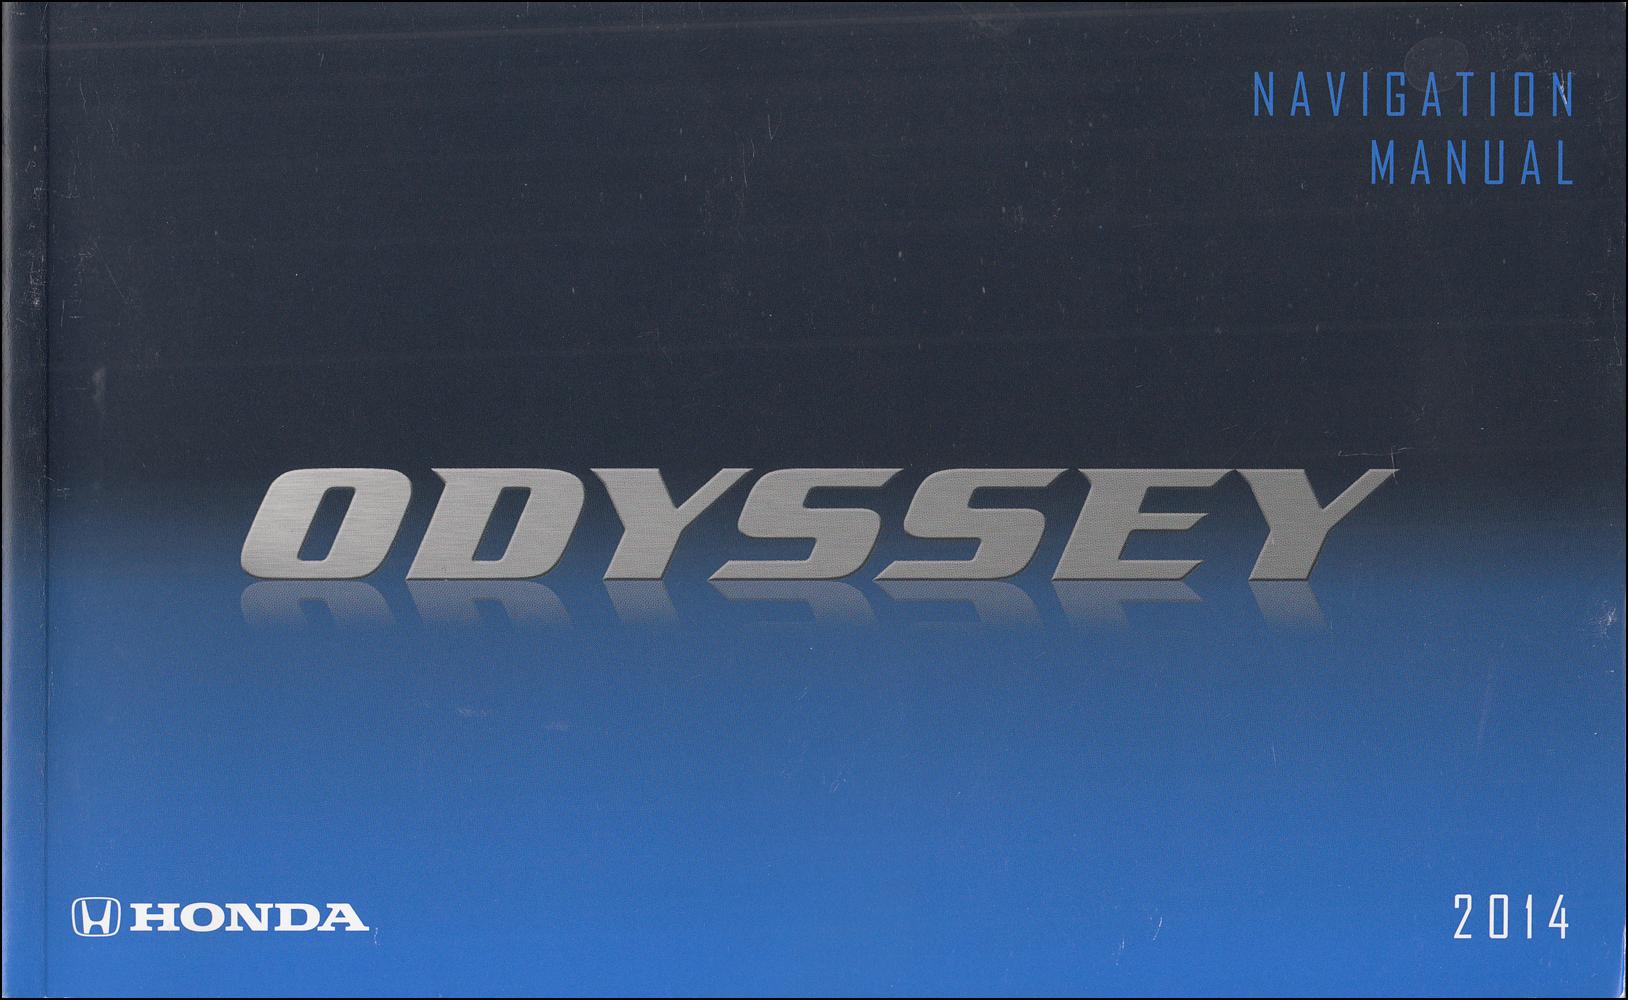 2014 Honda Odyssey Owner's Manual Original